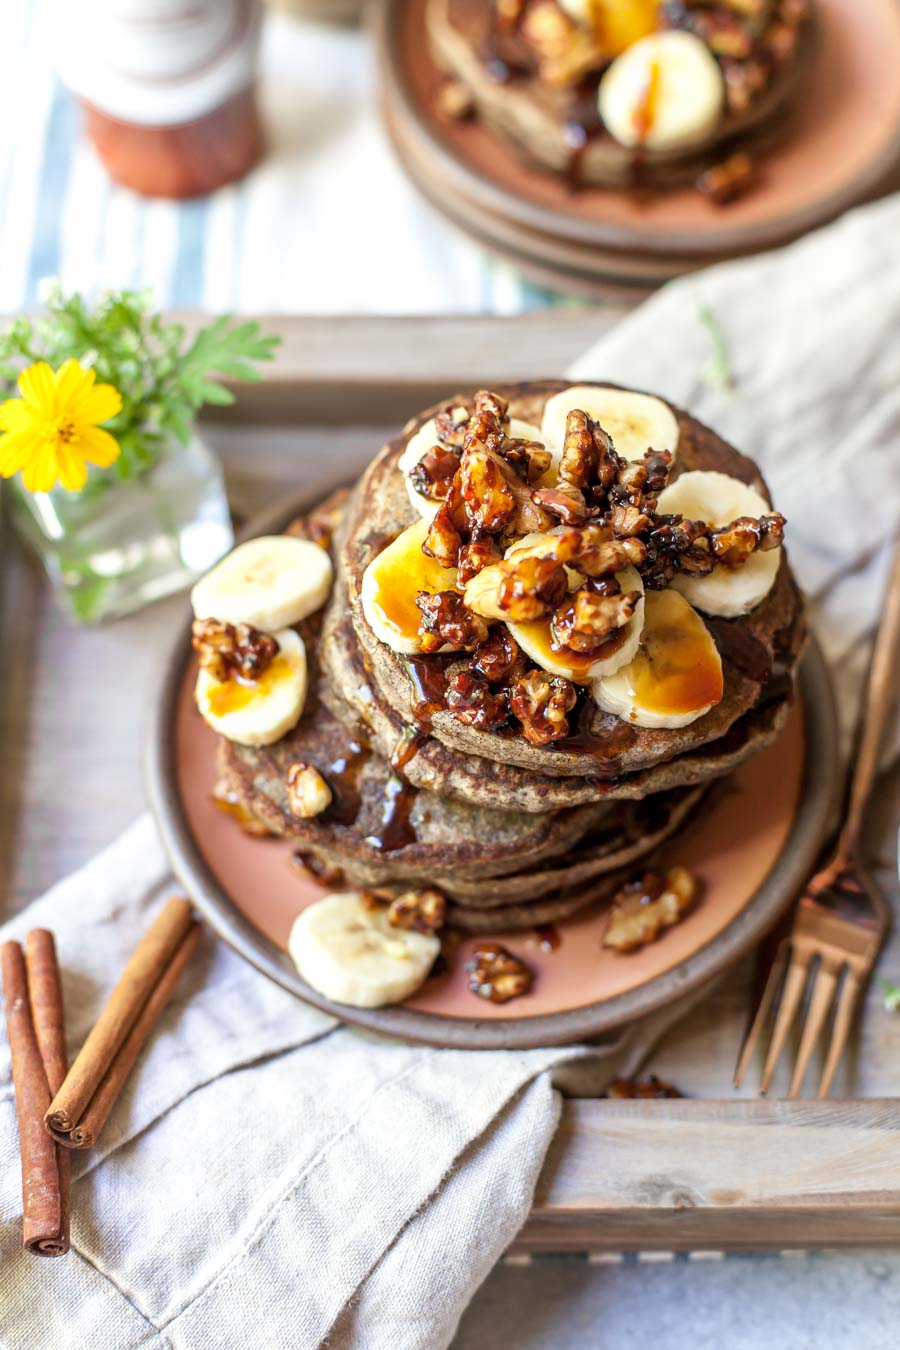 Gluten Free Banana Bread Pancakes with Walnuts and Date Syrup